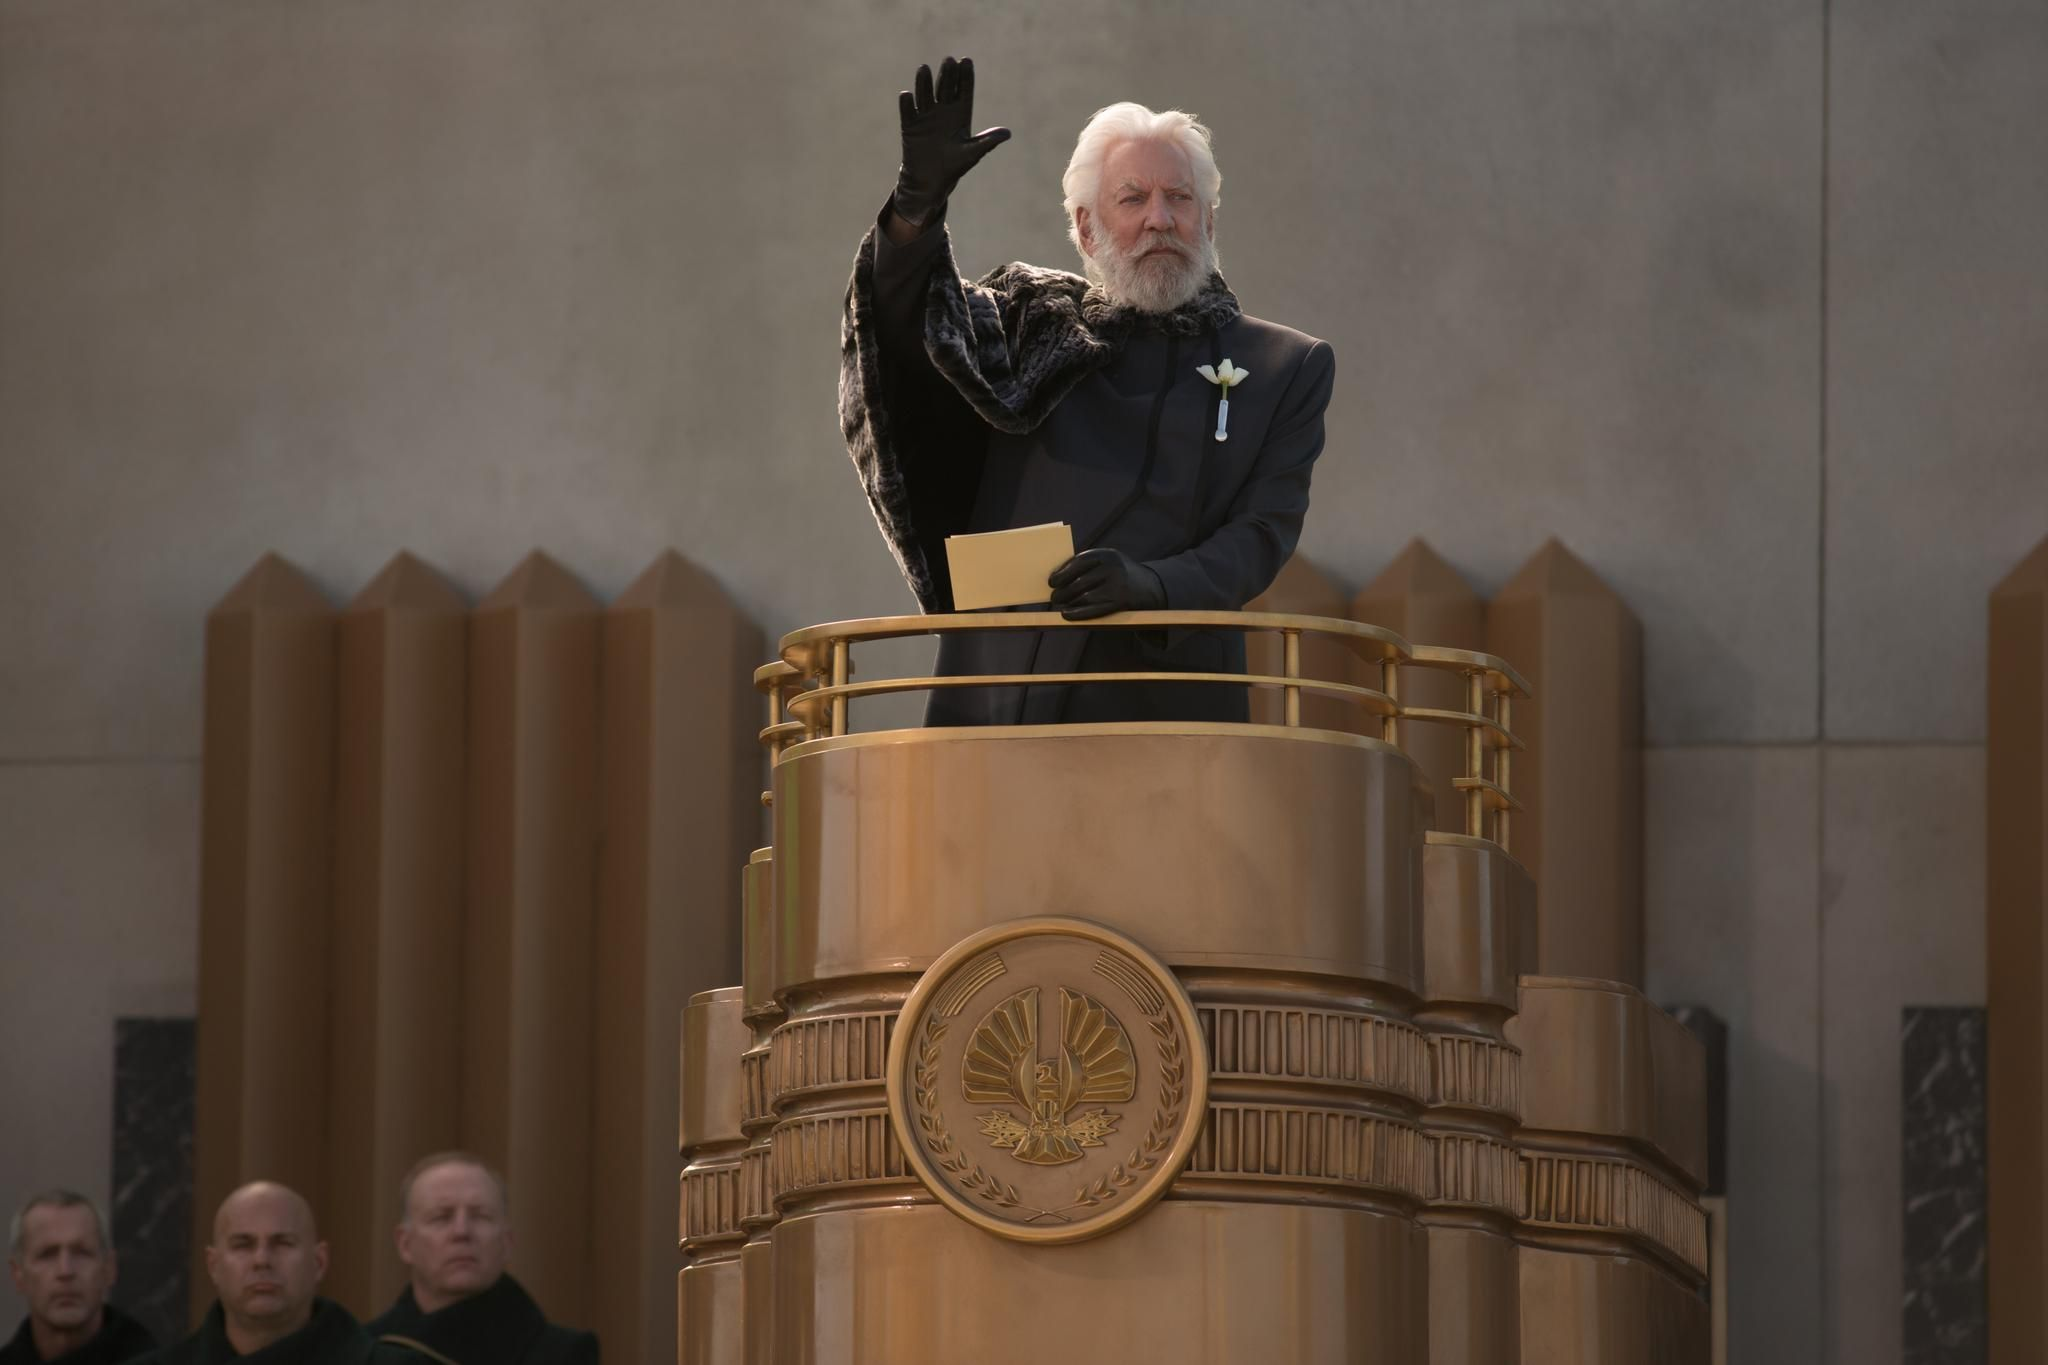 Still of Donald Sutherland in The Hunger Games: Catching Fire (2013) http://www.movpins.com/dHQxOTUxMjY0/the-hunger-games:-catching-fire-(2013)/still-2367479040